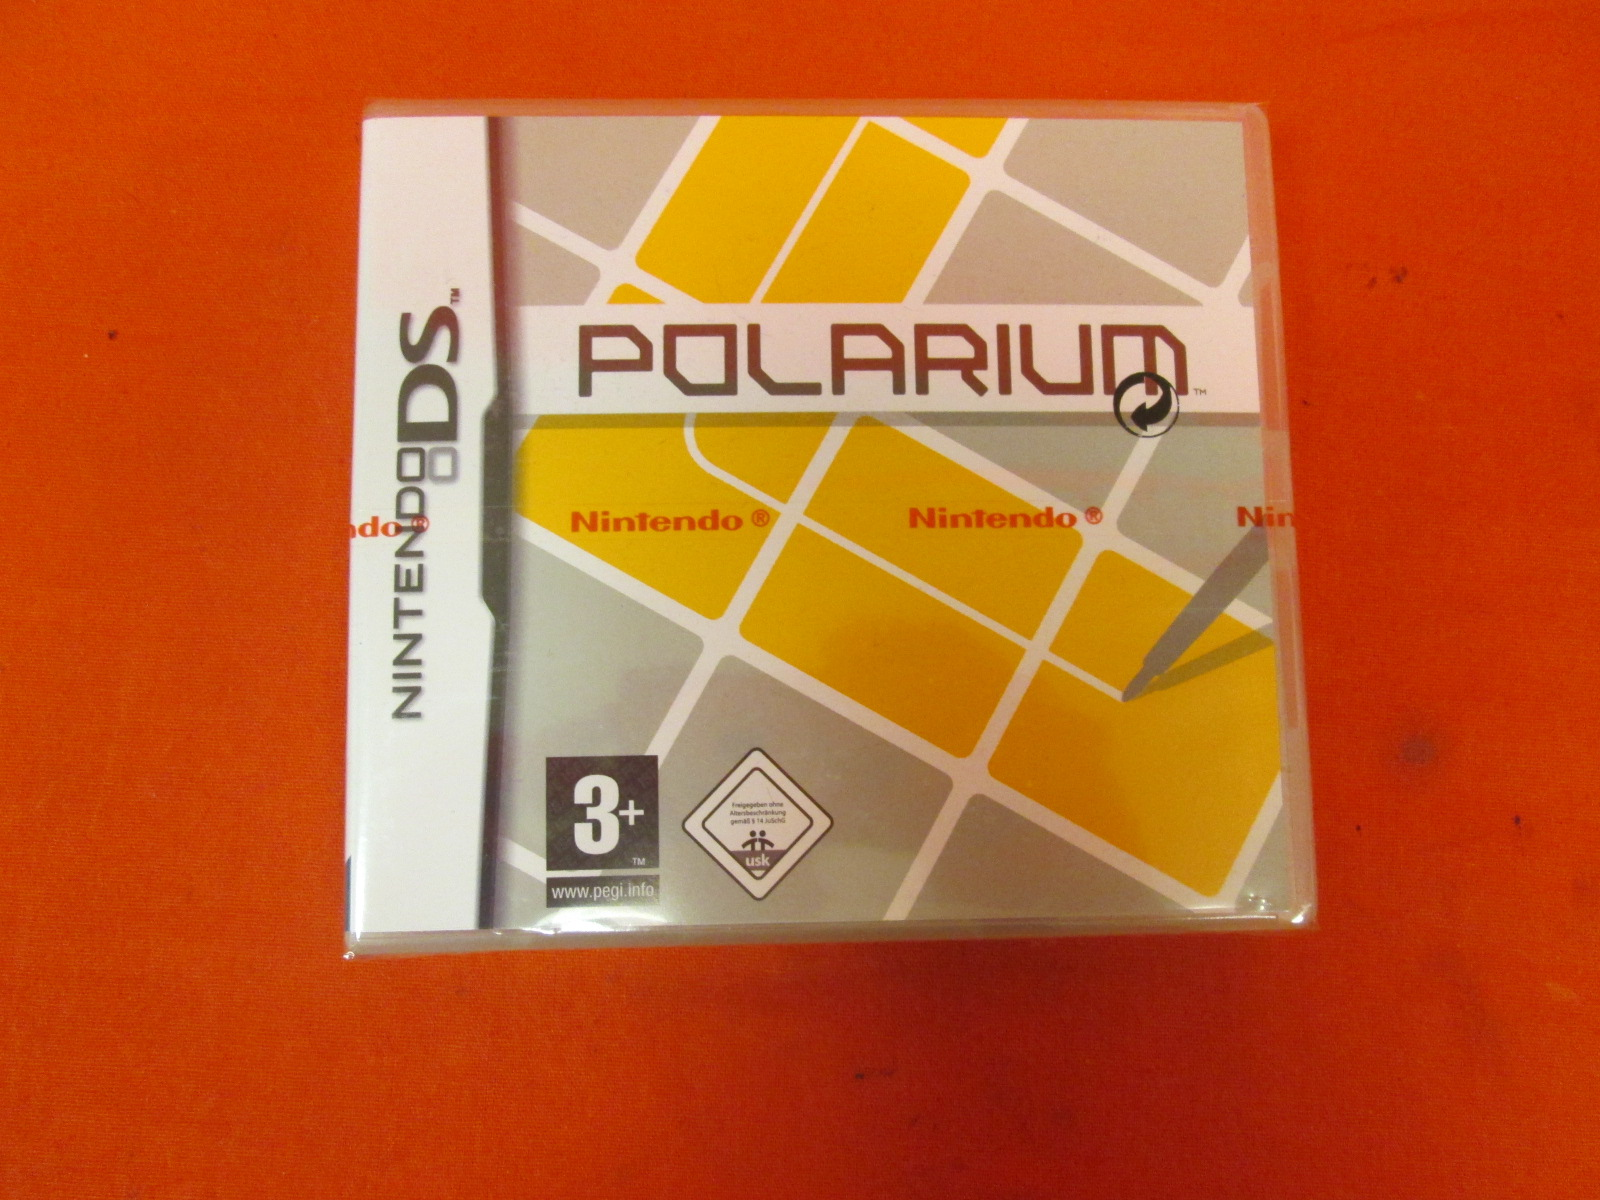 Polarium For Nintendo DS DSi 3DS 2DS